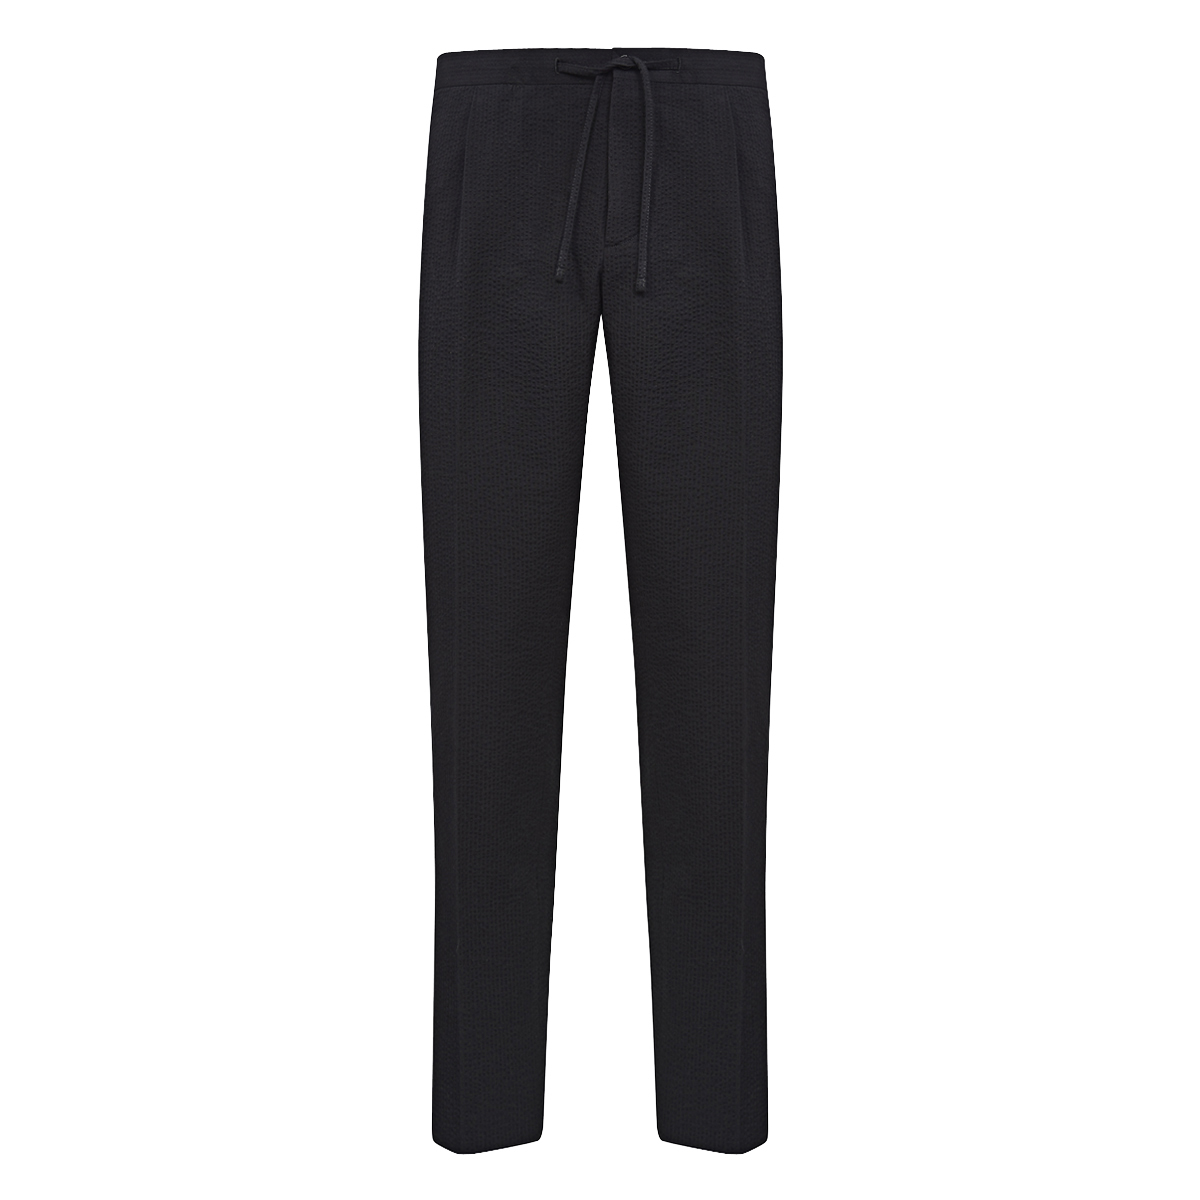 Black Cotton Seersucker Drawstring Trousers